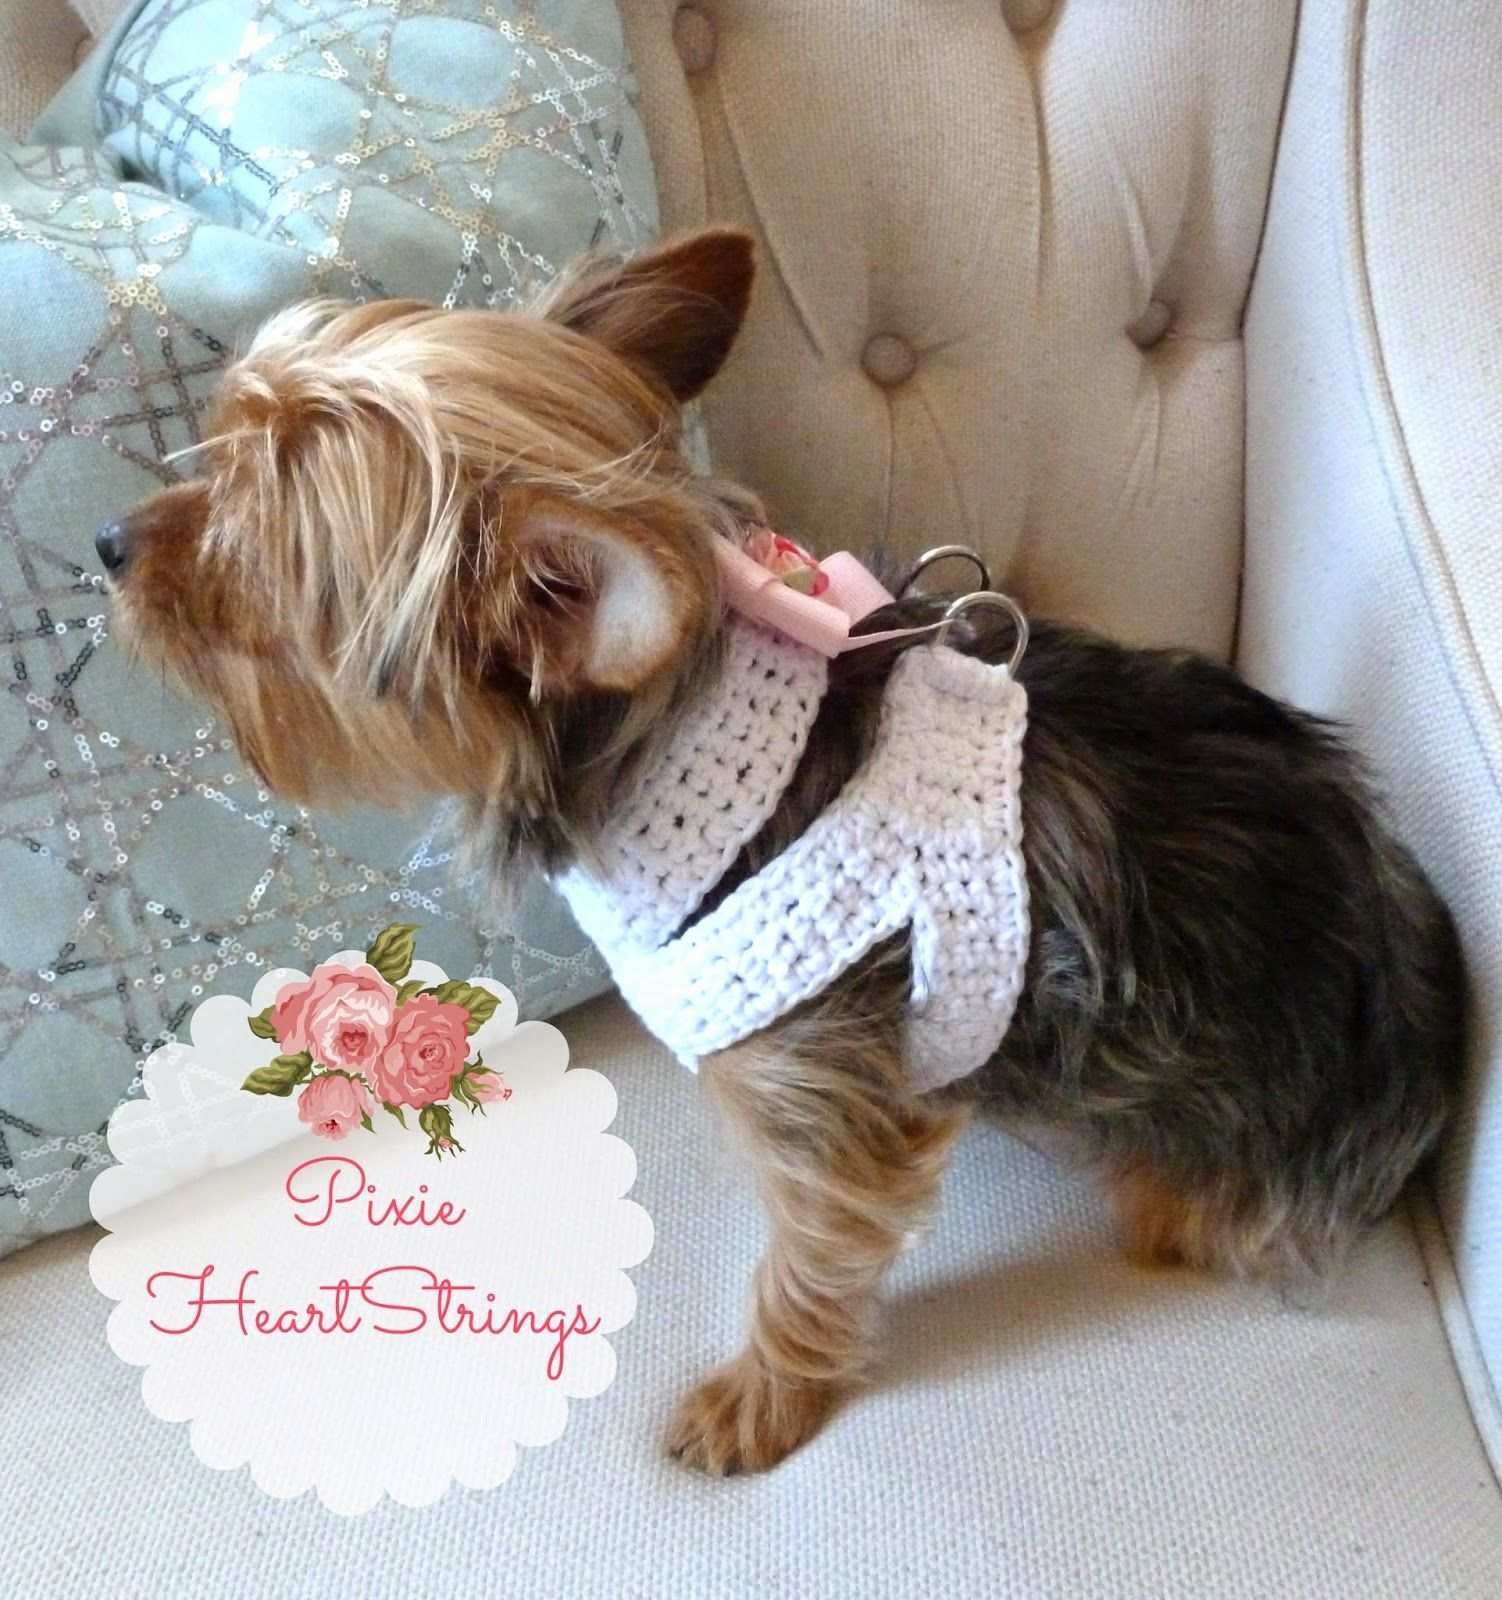 A crocheted dog harness for your tiny dog free pattern a crocheted dog harness for your tiny dog free pattern bankloansurffo Gallery